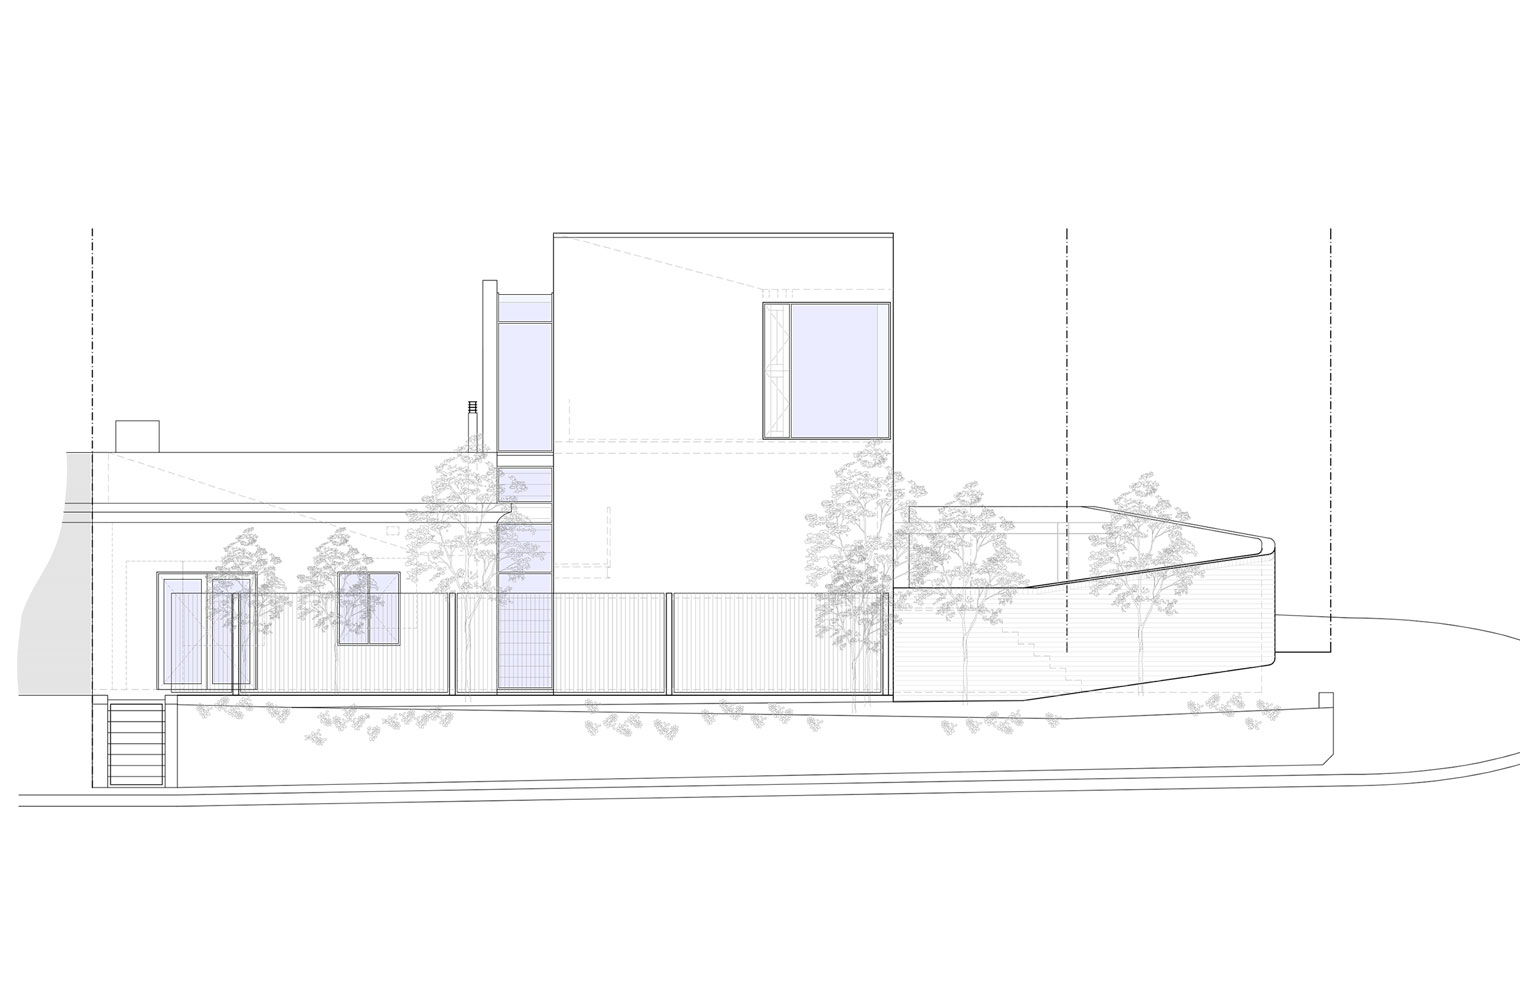 27 Clovelly Avenue - Clovelly Avenue Elevation